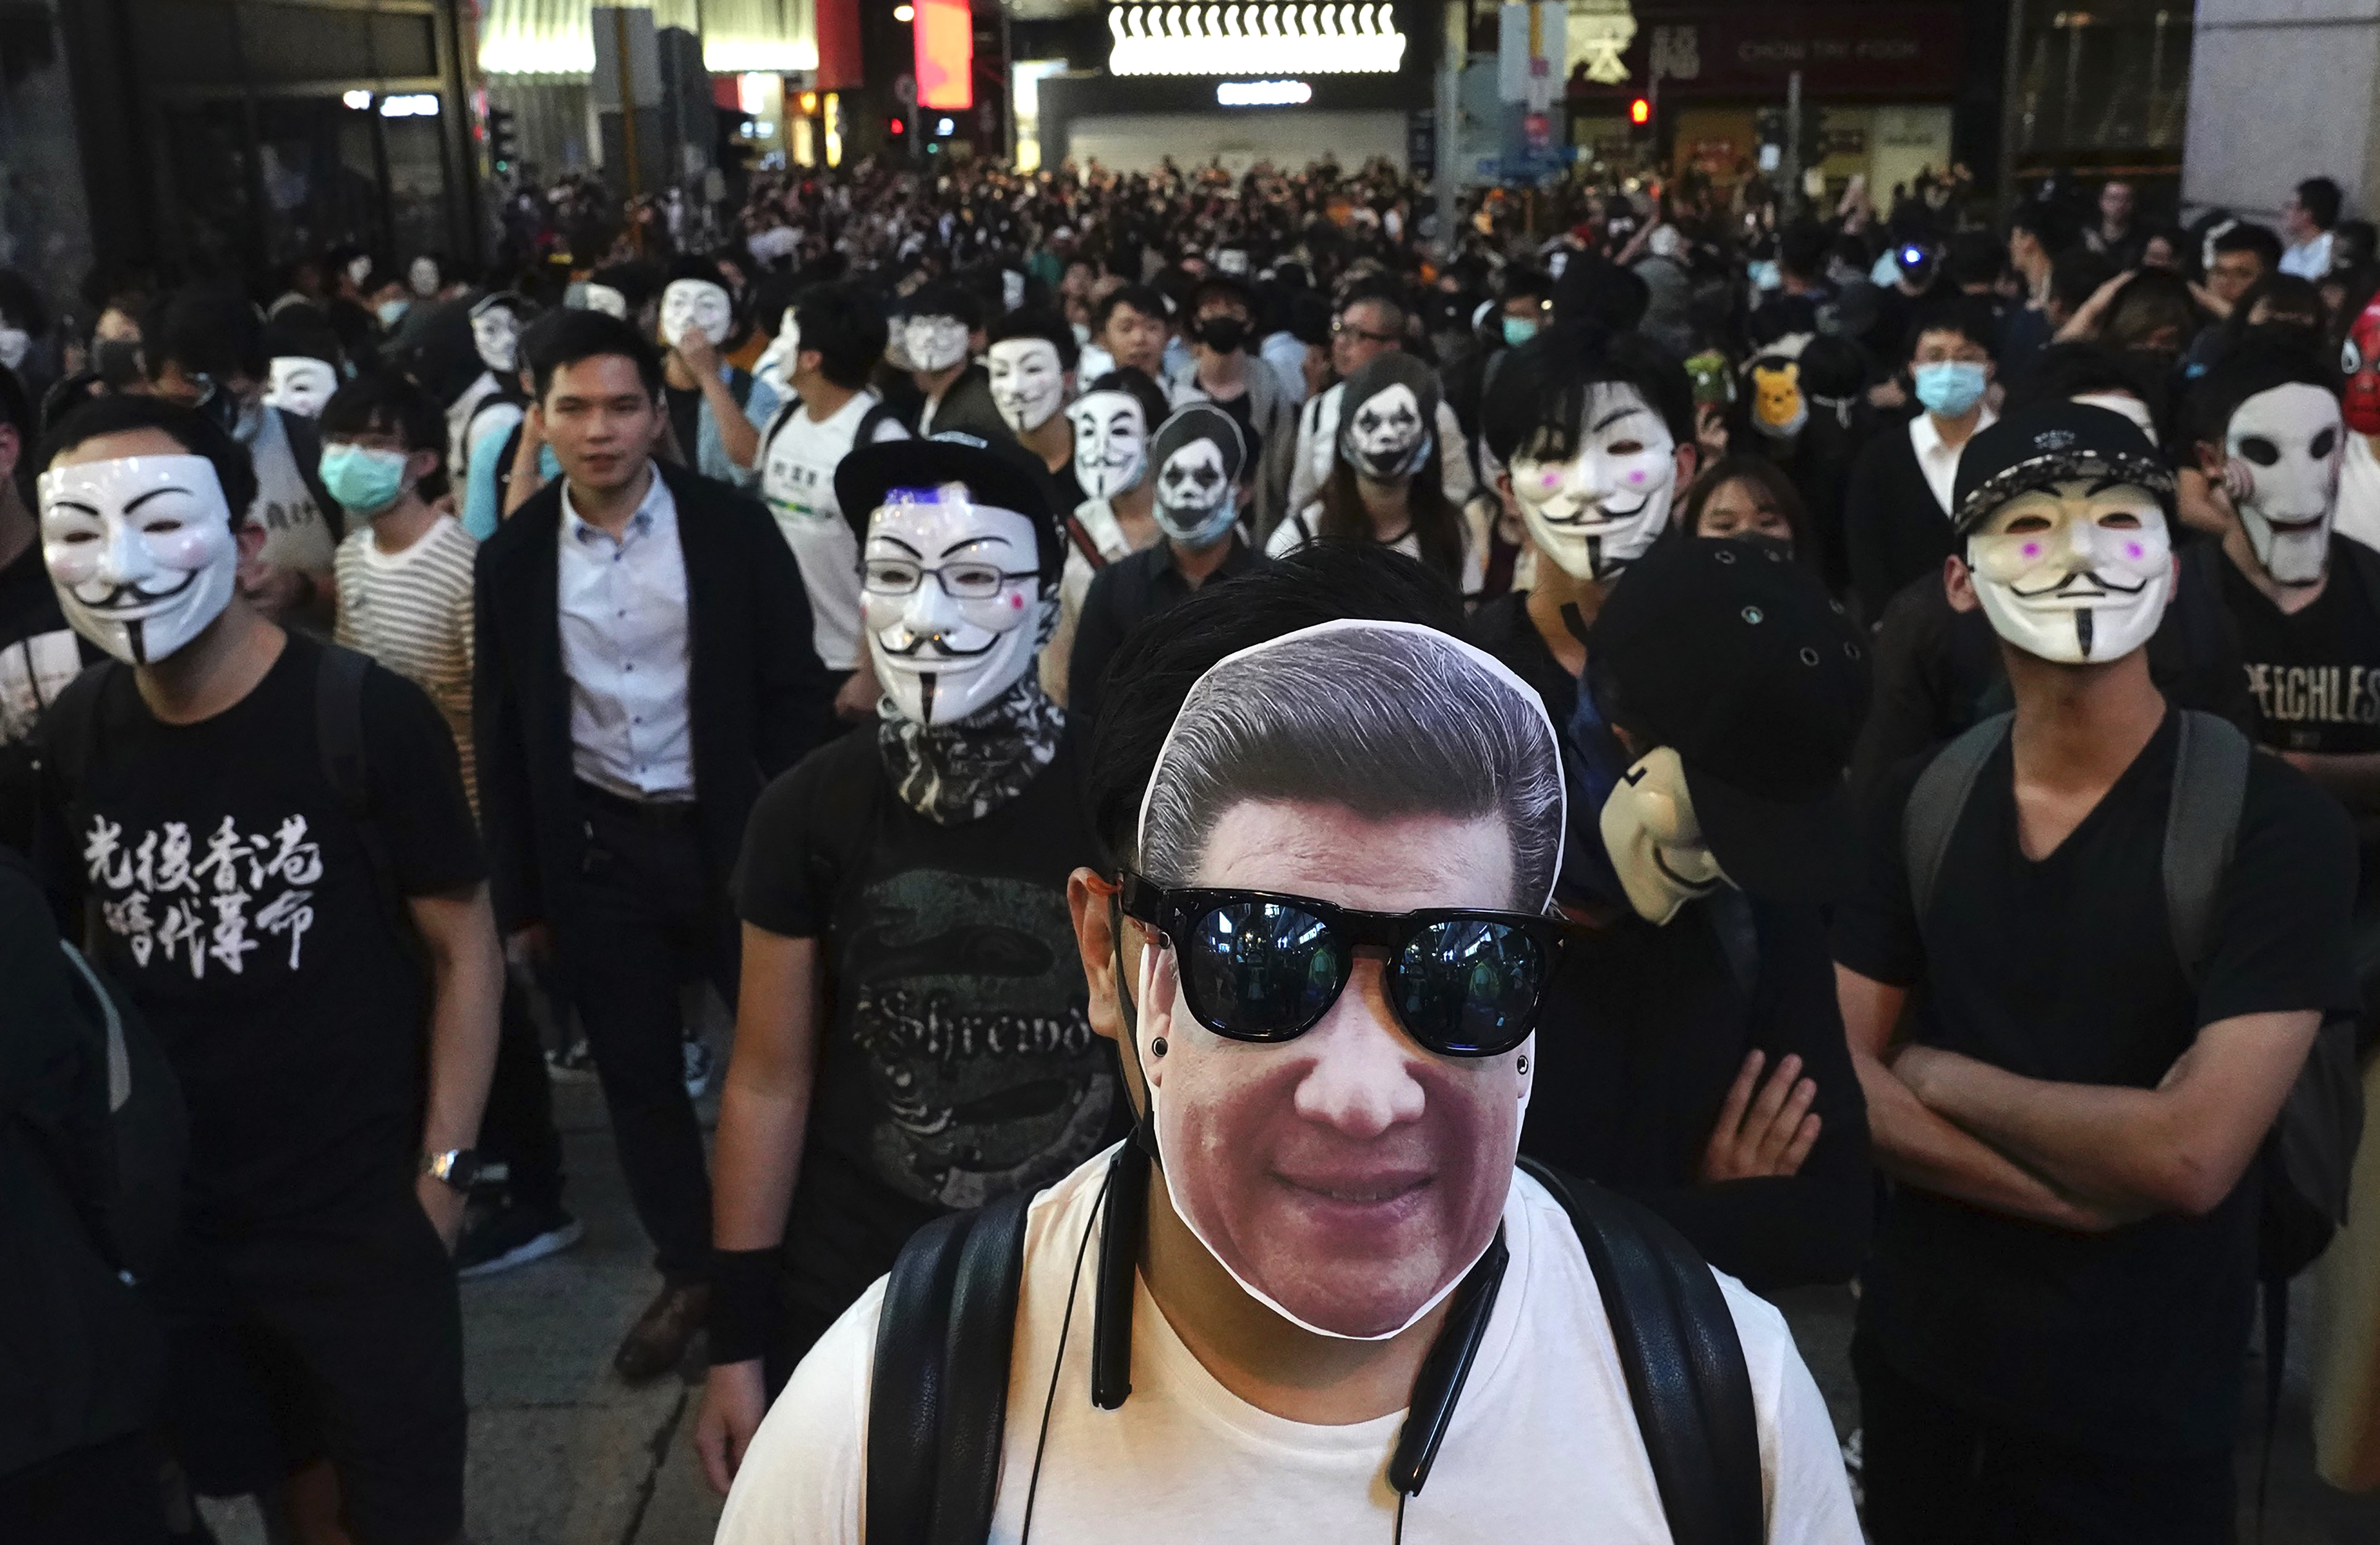 A man wearing a mask of Chinese President Xi Jinping stands with peole wearing Guy Fawkes masks on a street in Hong Kong, Thursday, Oct. 31, 2019. Hong Kong authorities are bracing as pro-democracy protesters urged people on Thursday to celebrate Halloween by wearing masks on a march in defiance of a government ban on face coverings. (AP Photo/Vincent Yu)